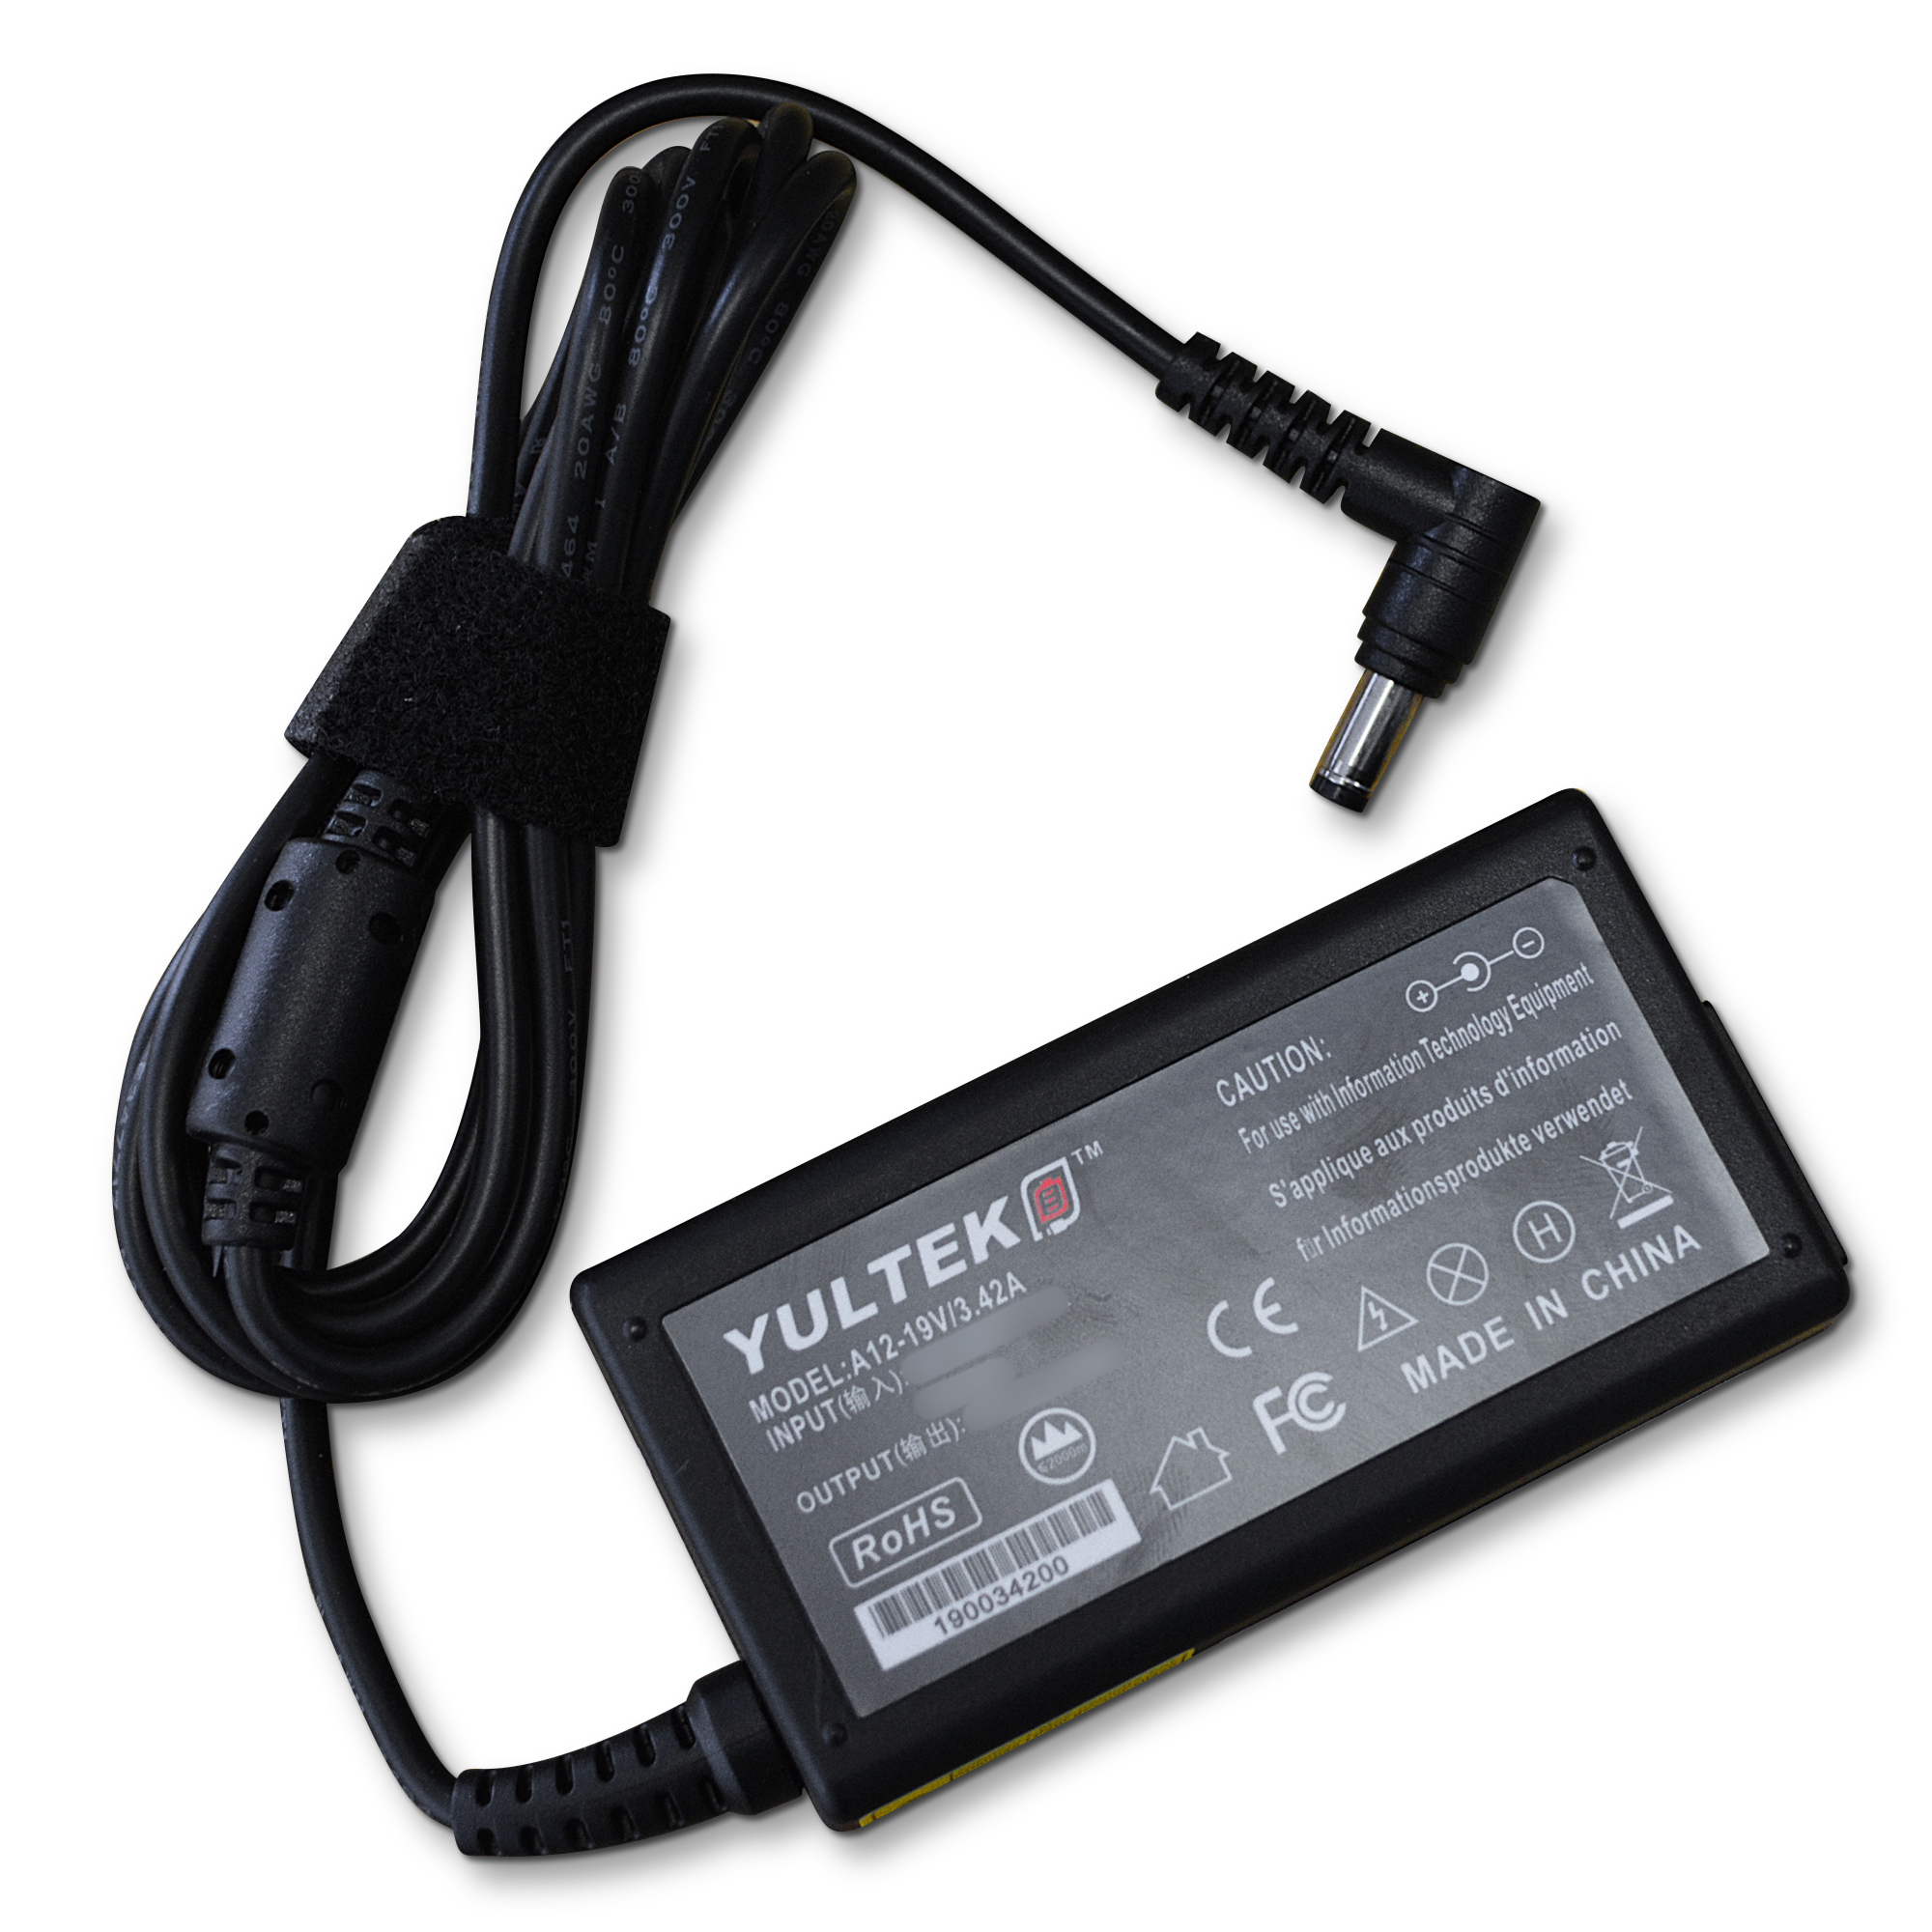 Fujitsu-Siemens Part Number FIU:12-01793-04 Laptop Charger